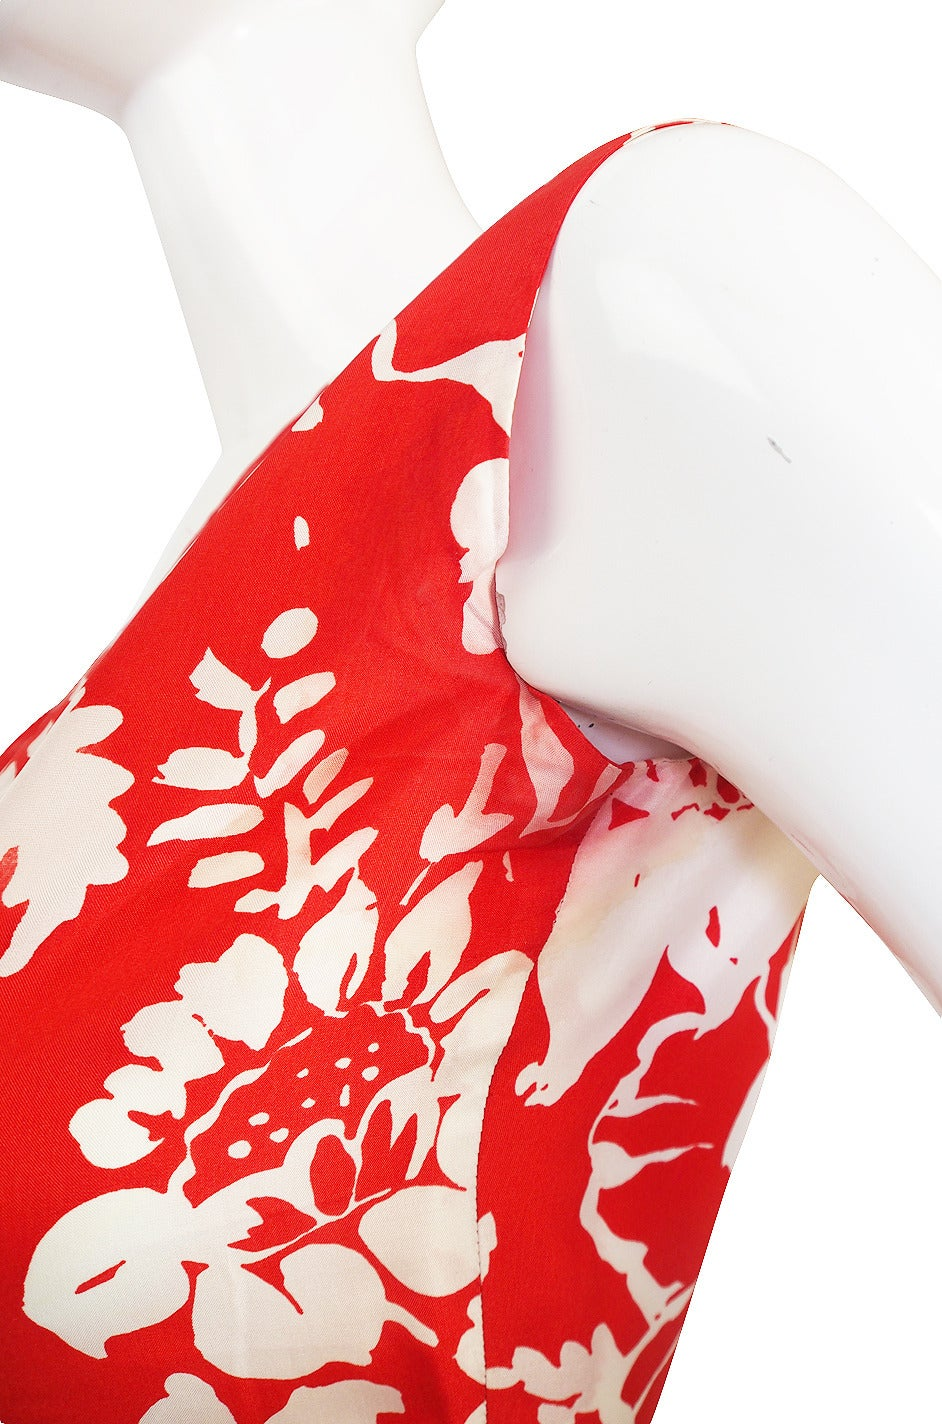 1973 Haute Couture Chanel Red Print Silk Dress 8